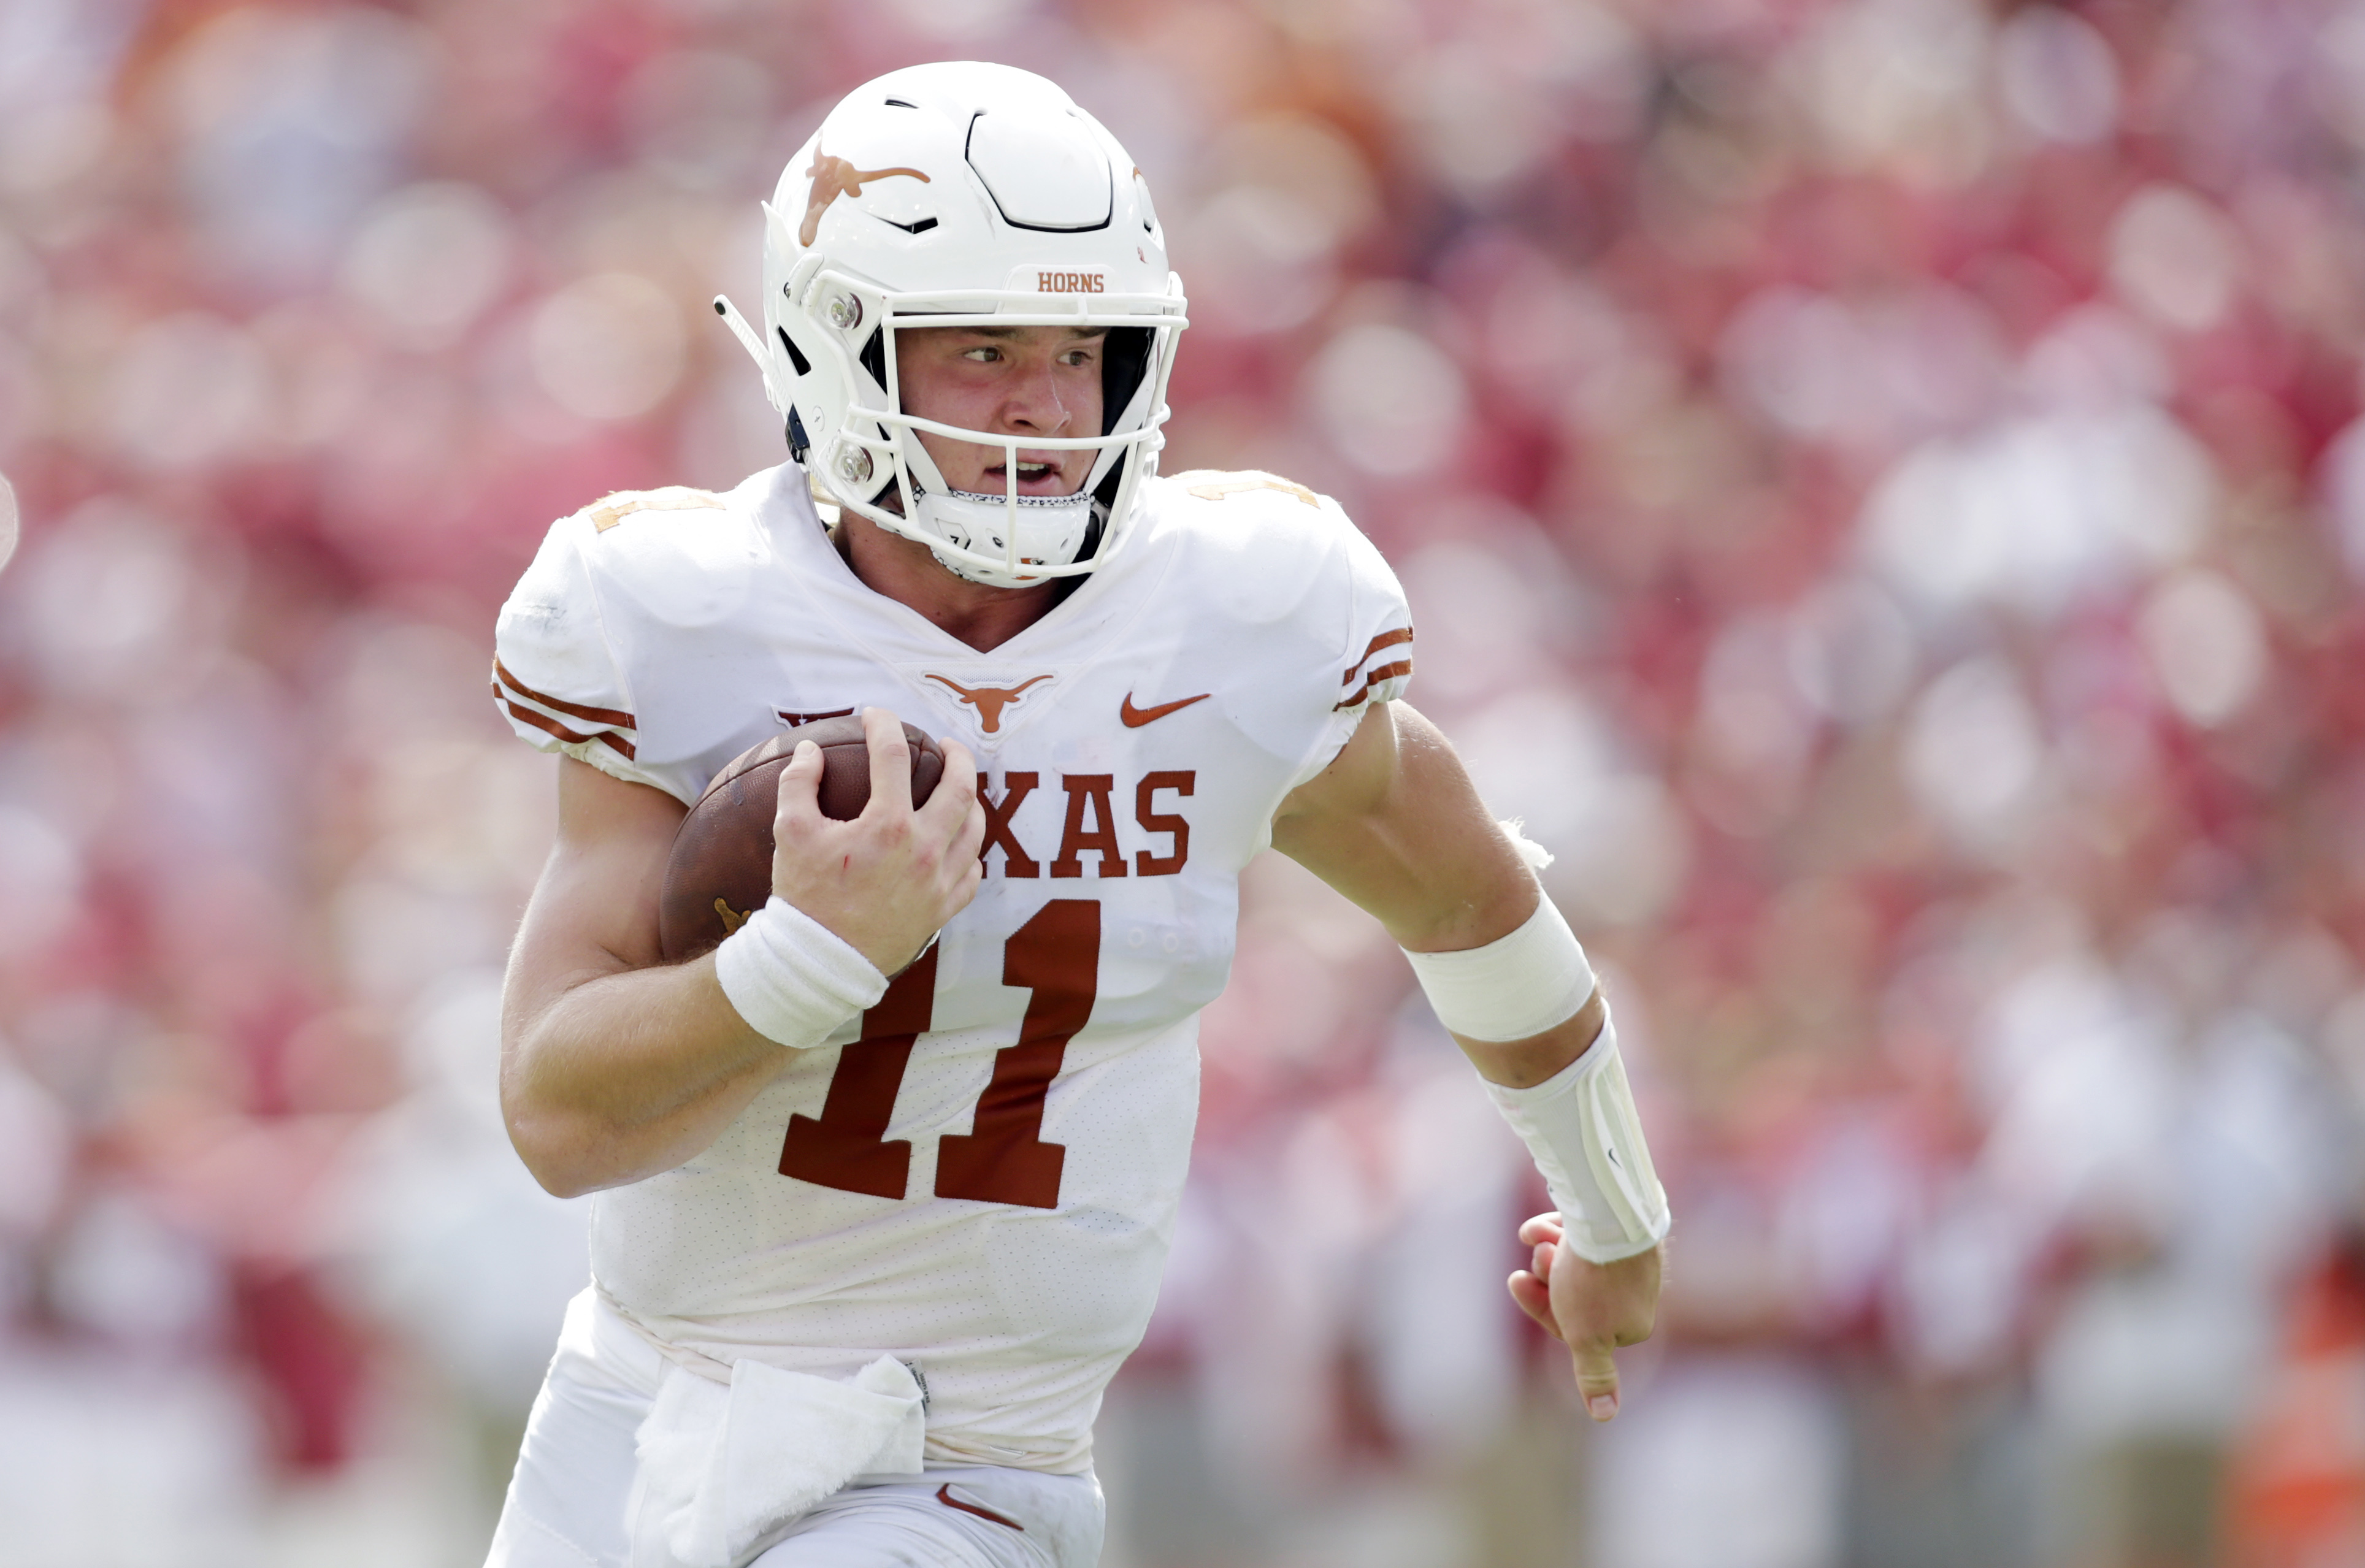 Oct 6, 2018; Dallas, TX, USA; Texas Longhorns quarterback Sam Ehlinger (11) runs for a touchdown in the third quarter against the Oklahoma Sooners at the Cotton Bowl. Mandatory Credit: Tim Heitman-USA TODAY Sports